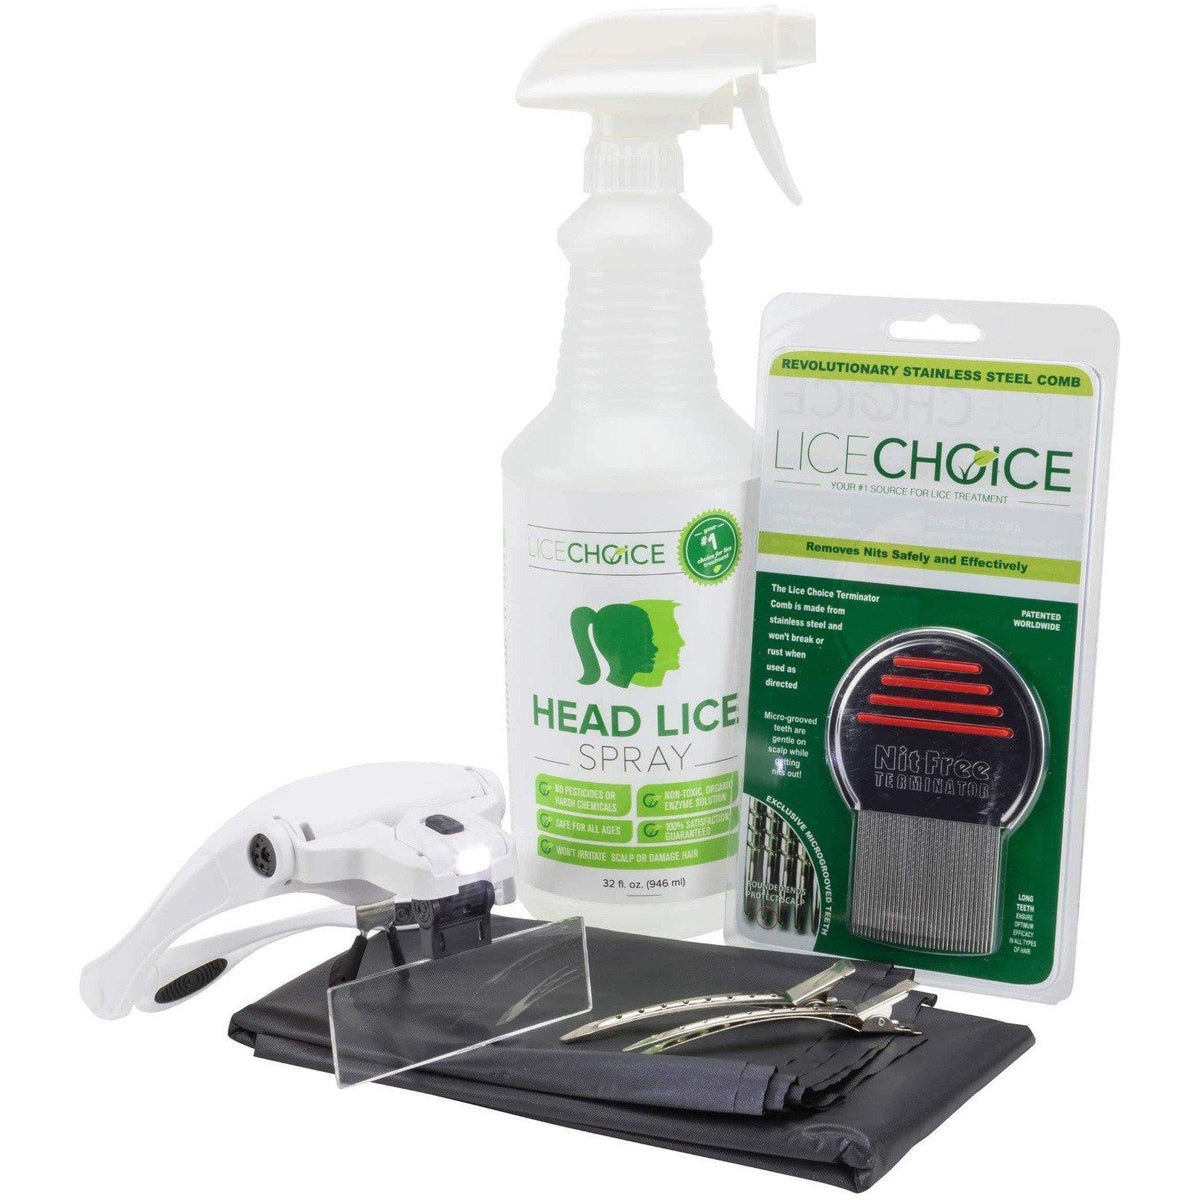 Lice Choice Head Lice Treatment Kit with Terminator Nit Comb, Magnifying Goggles, Disposable Cape, and Hair Clips.